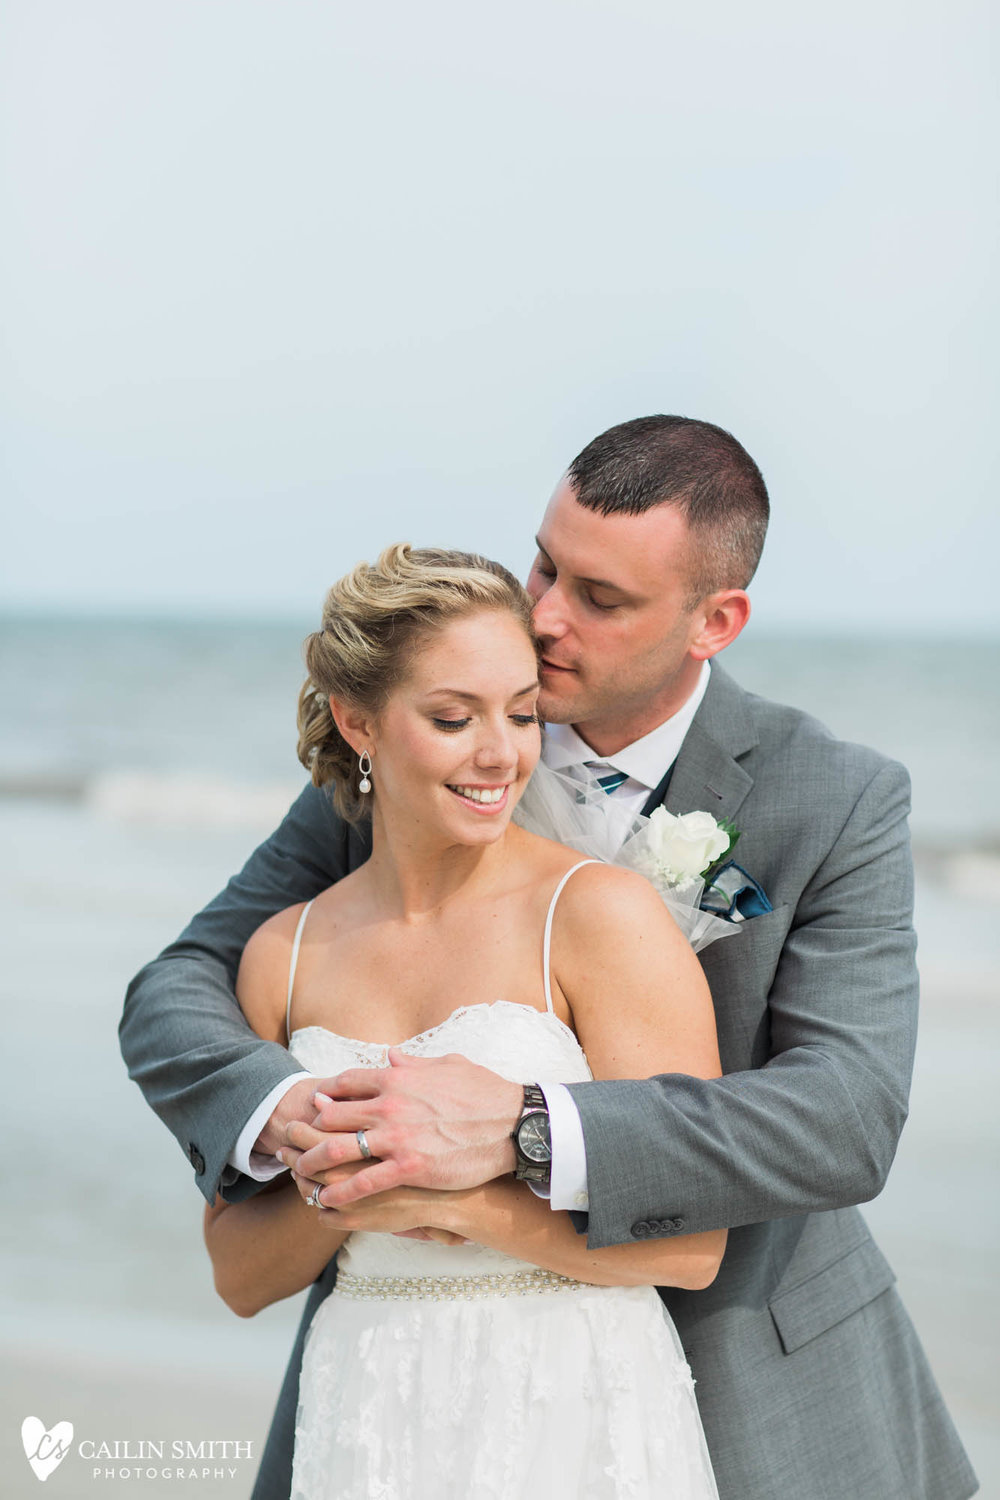 Sarah_Justin_St_Simons_Island_Lighthouse_Wedding_Photography_046.jpg